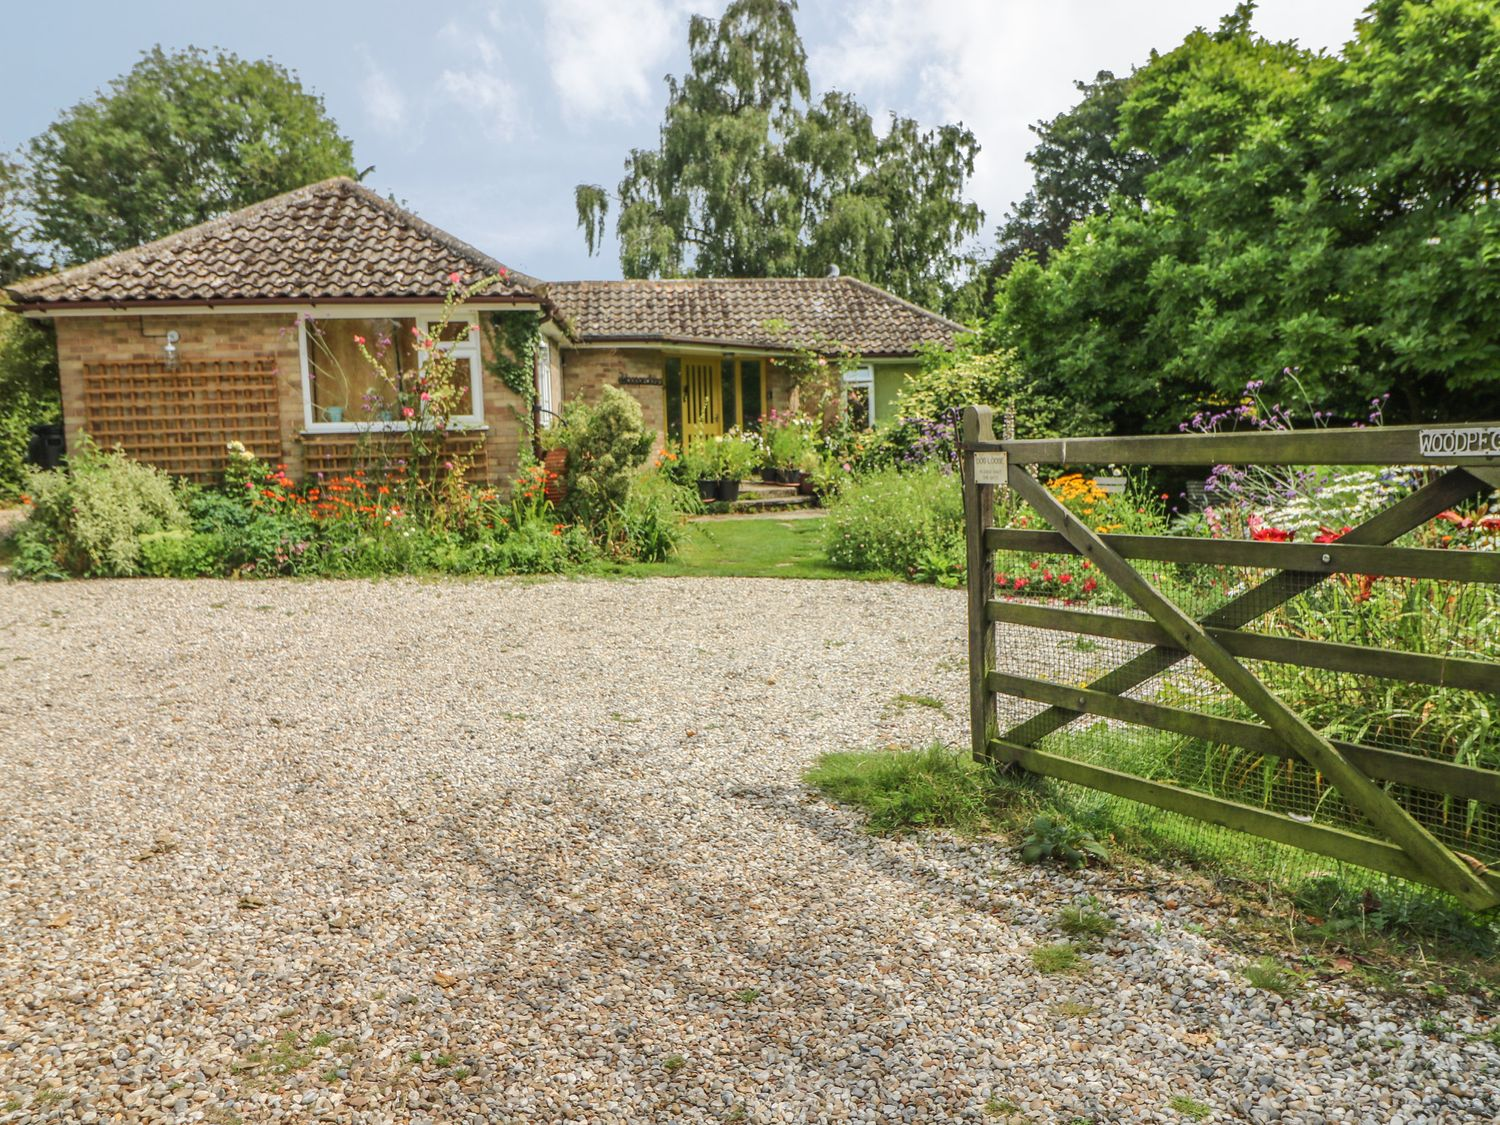 Holiday Cottages in Kent: Little Yaffle, Martin nr. St. Margaret's at Cliffe | Sykes Cottages